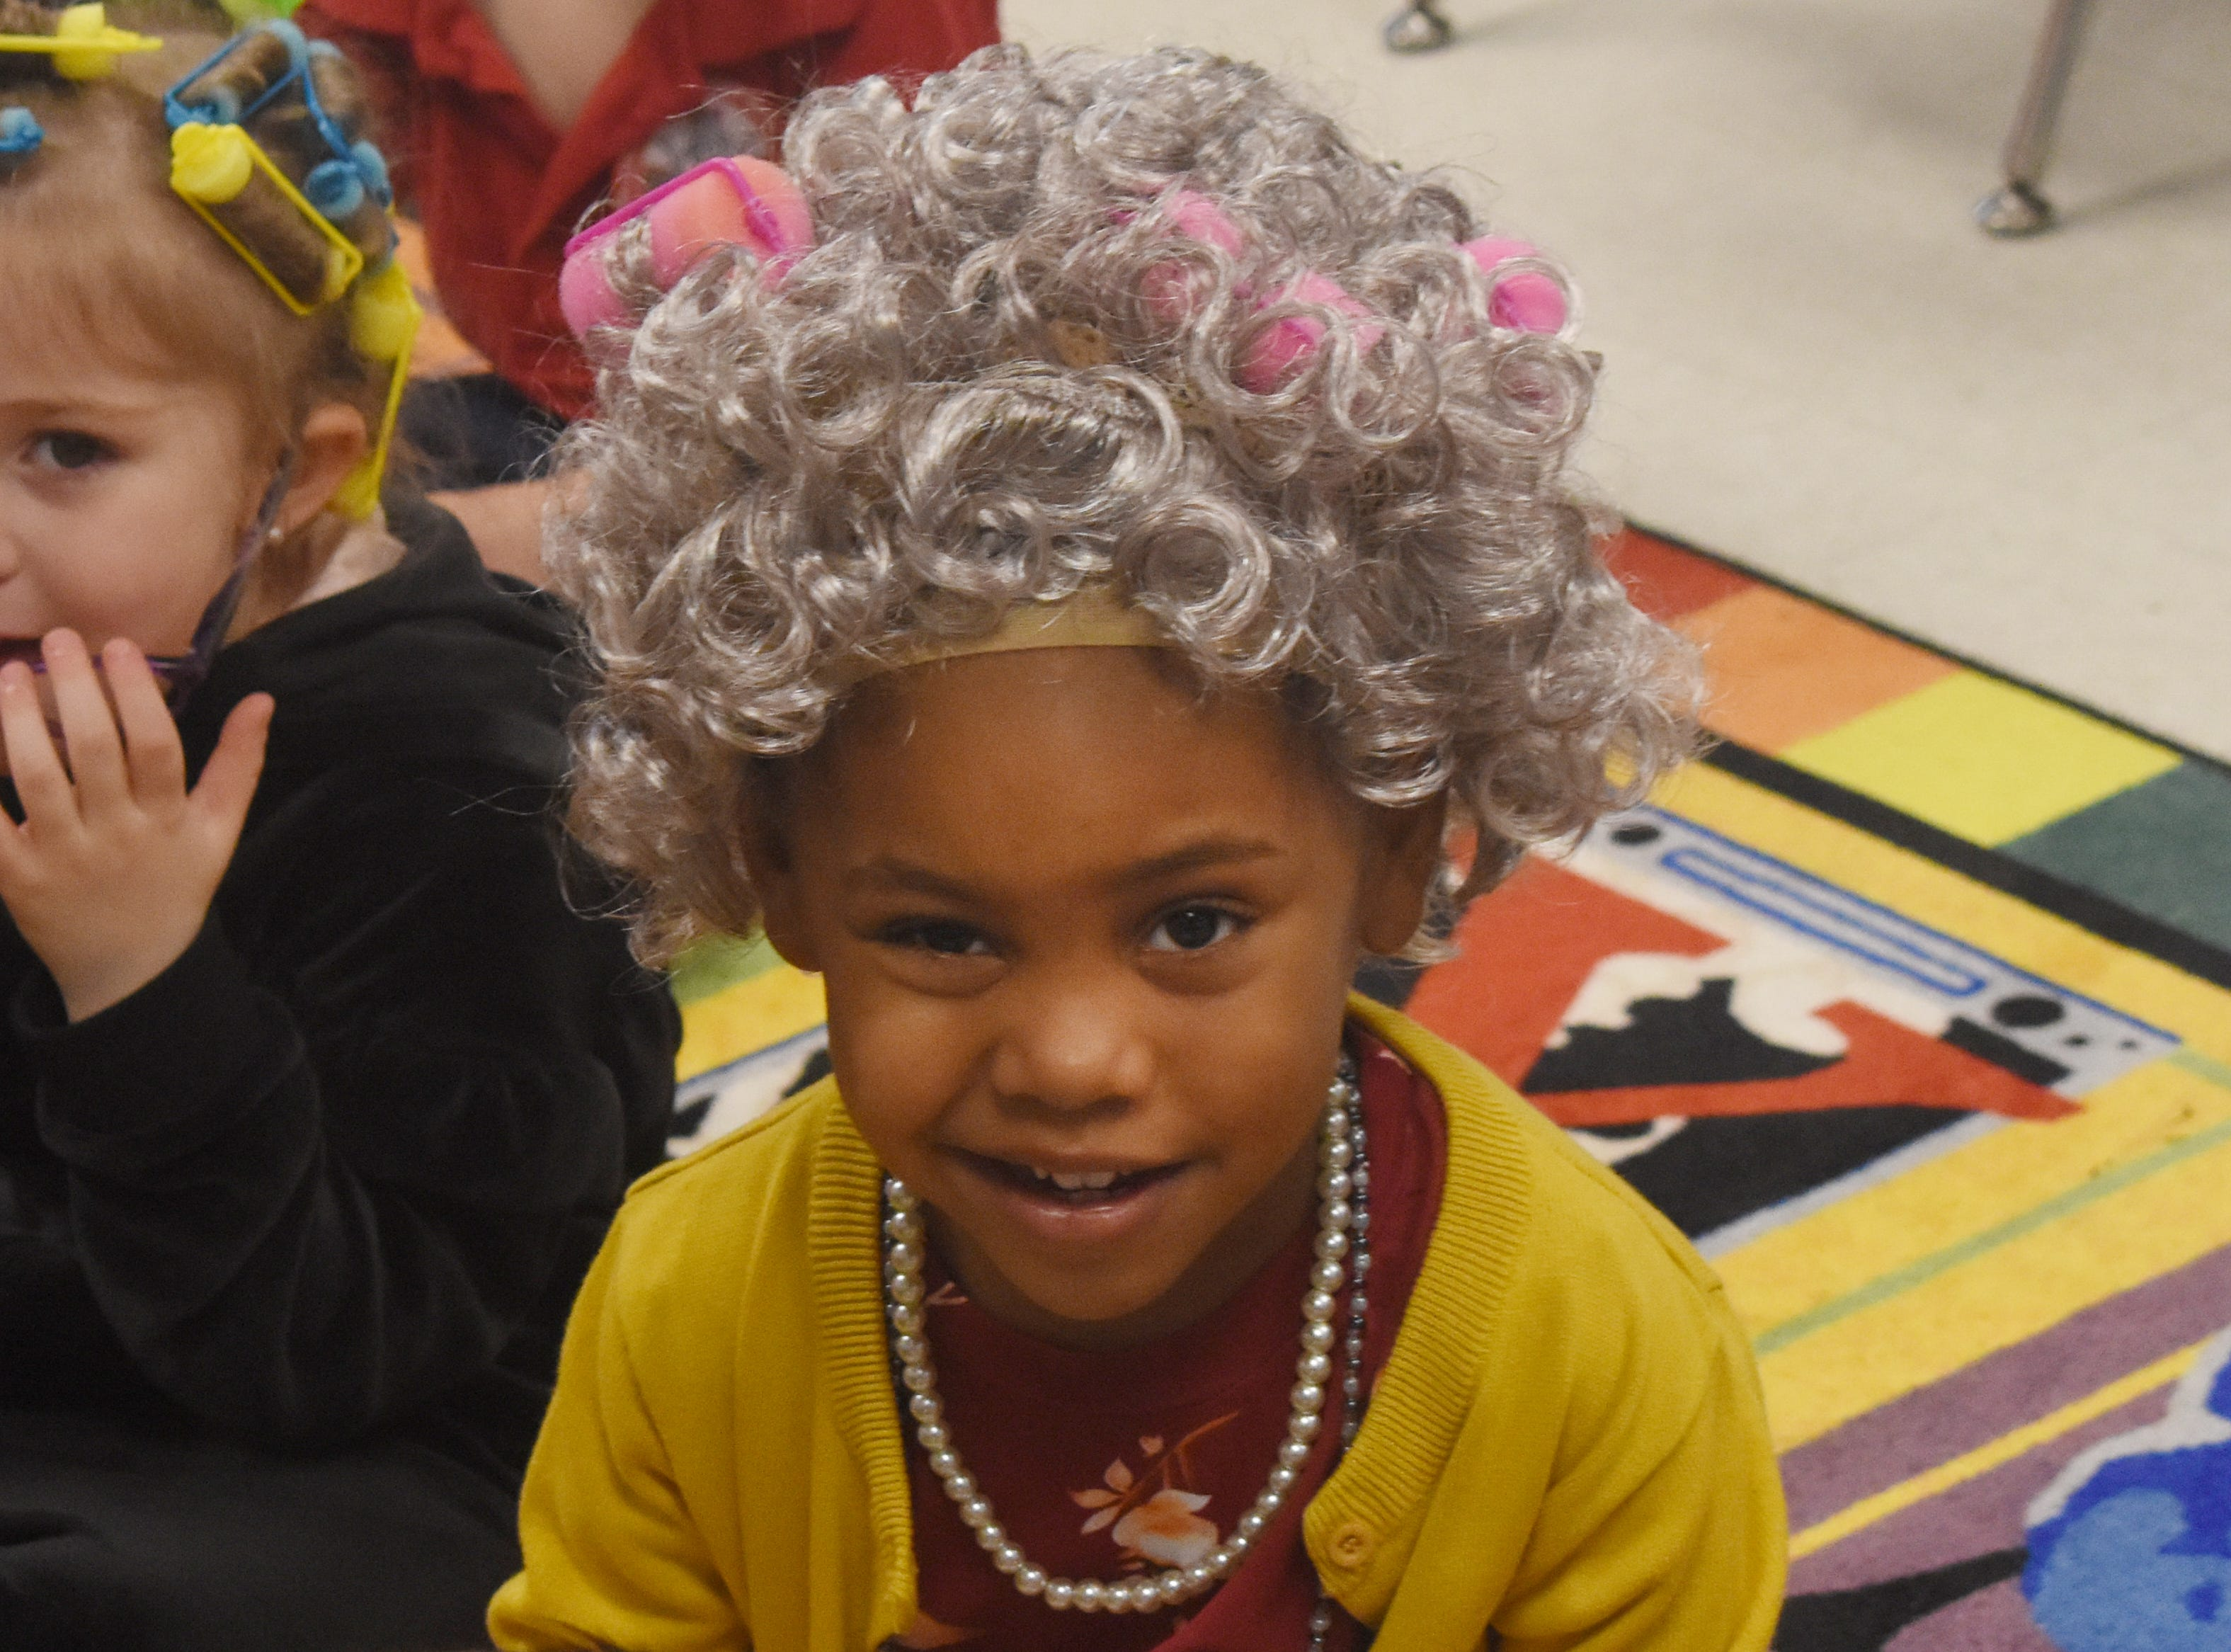 St. Frances Cabrini pre-Kindergarten student Alle Harris smiles while dressed in a curly gray wig with rollers, a pearl necklace and a cardigan. On Tuesday, Feb. 5, 2019, St. Frances Cabrini School pre-Kindergarten and Kindergarten students dressed up as 100-year-olds in celebration of 100 days of school.